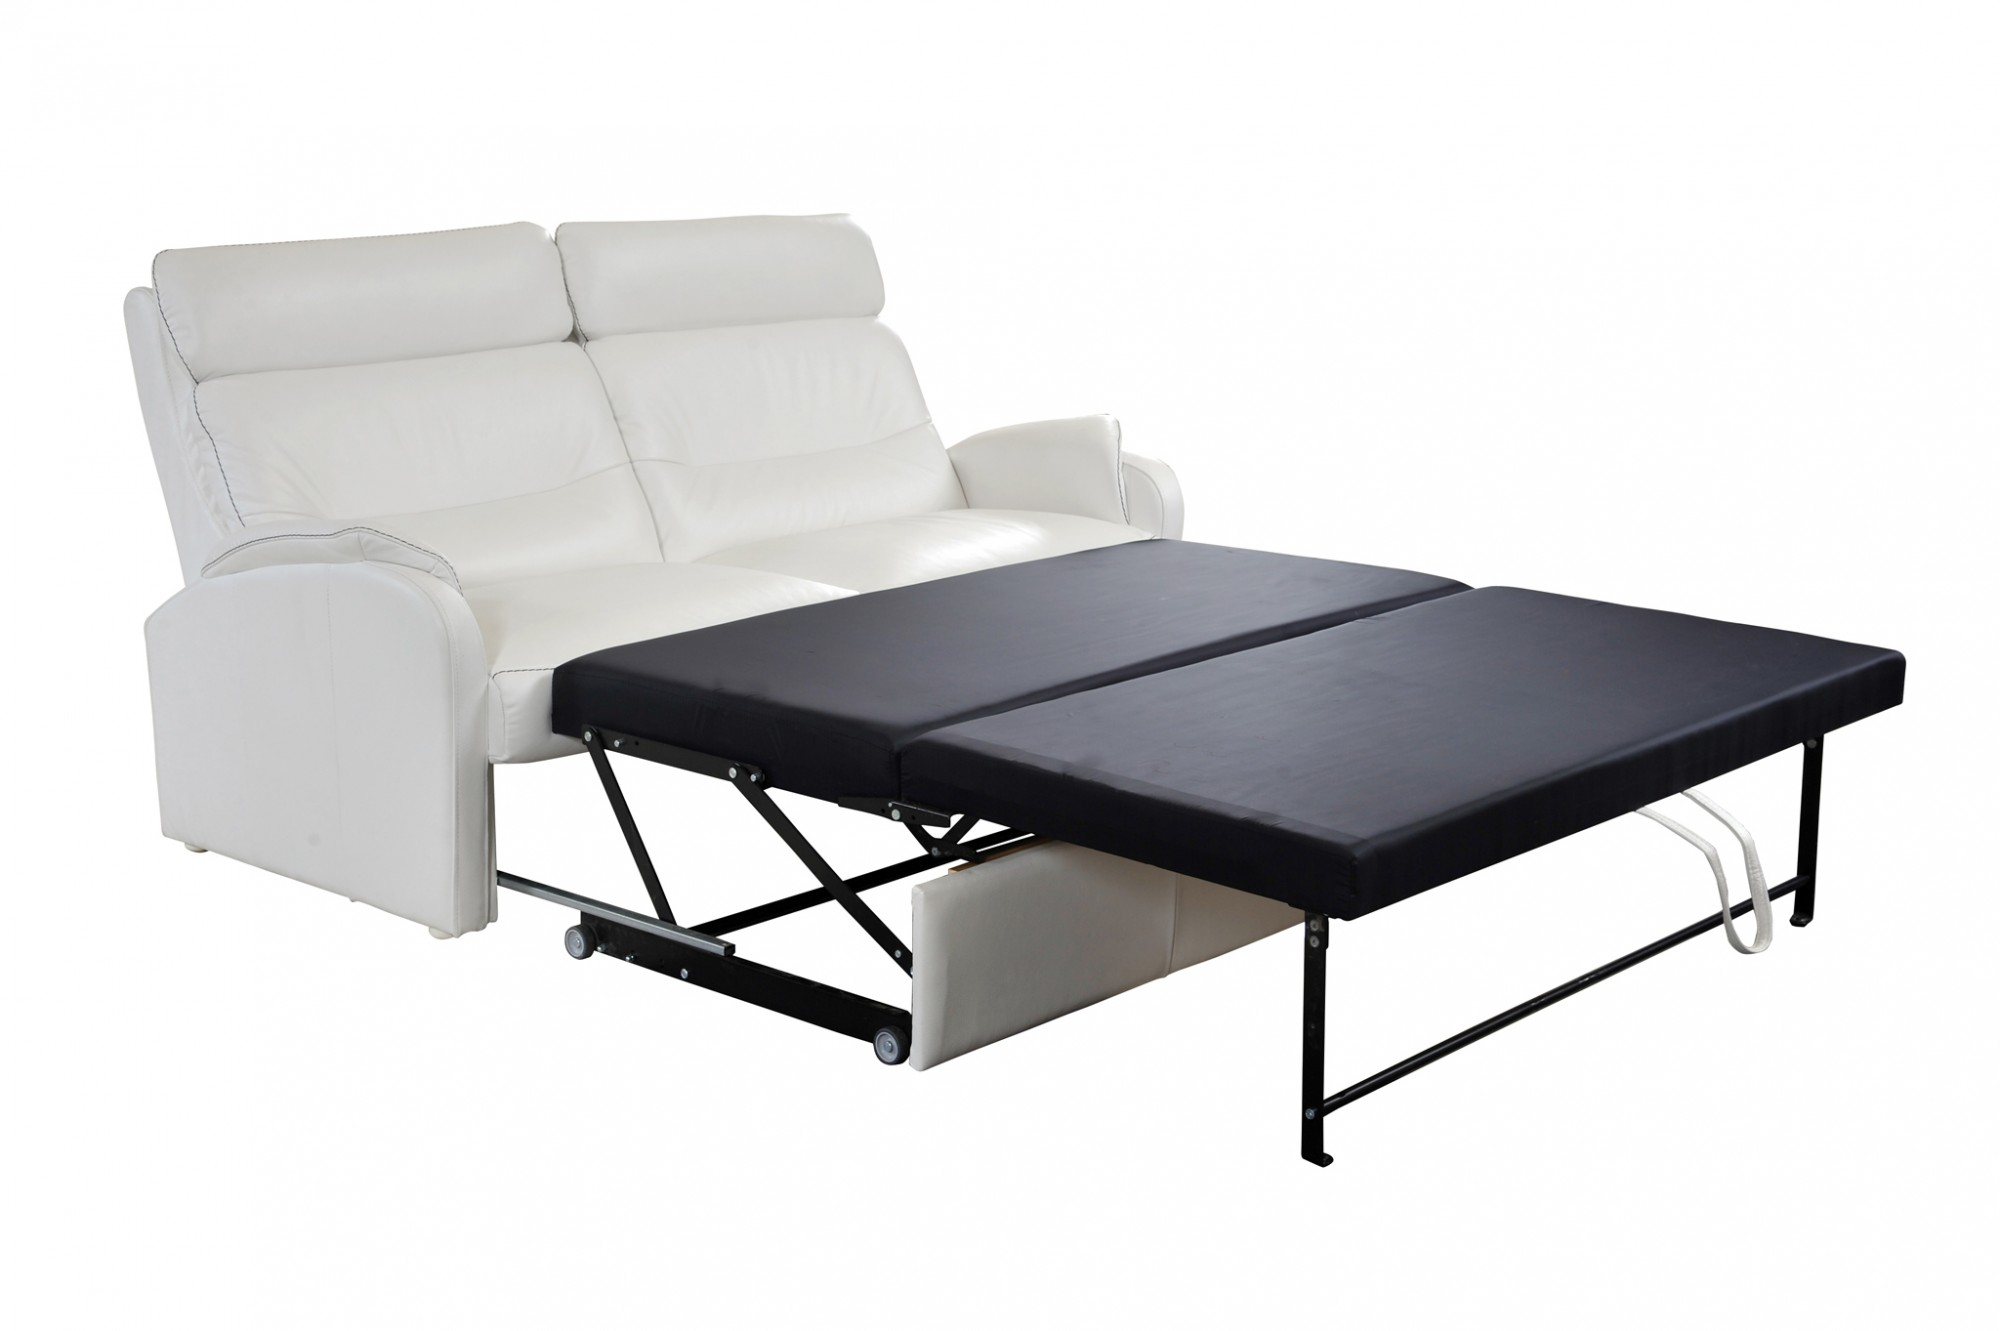 3 seater sofa beds providence caro seat bed glossyhome